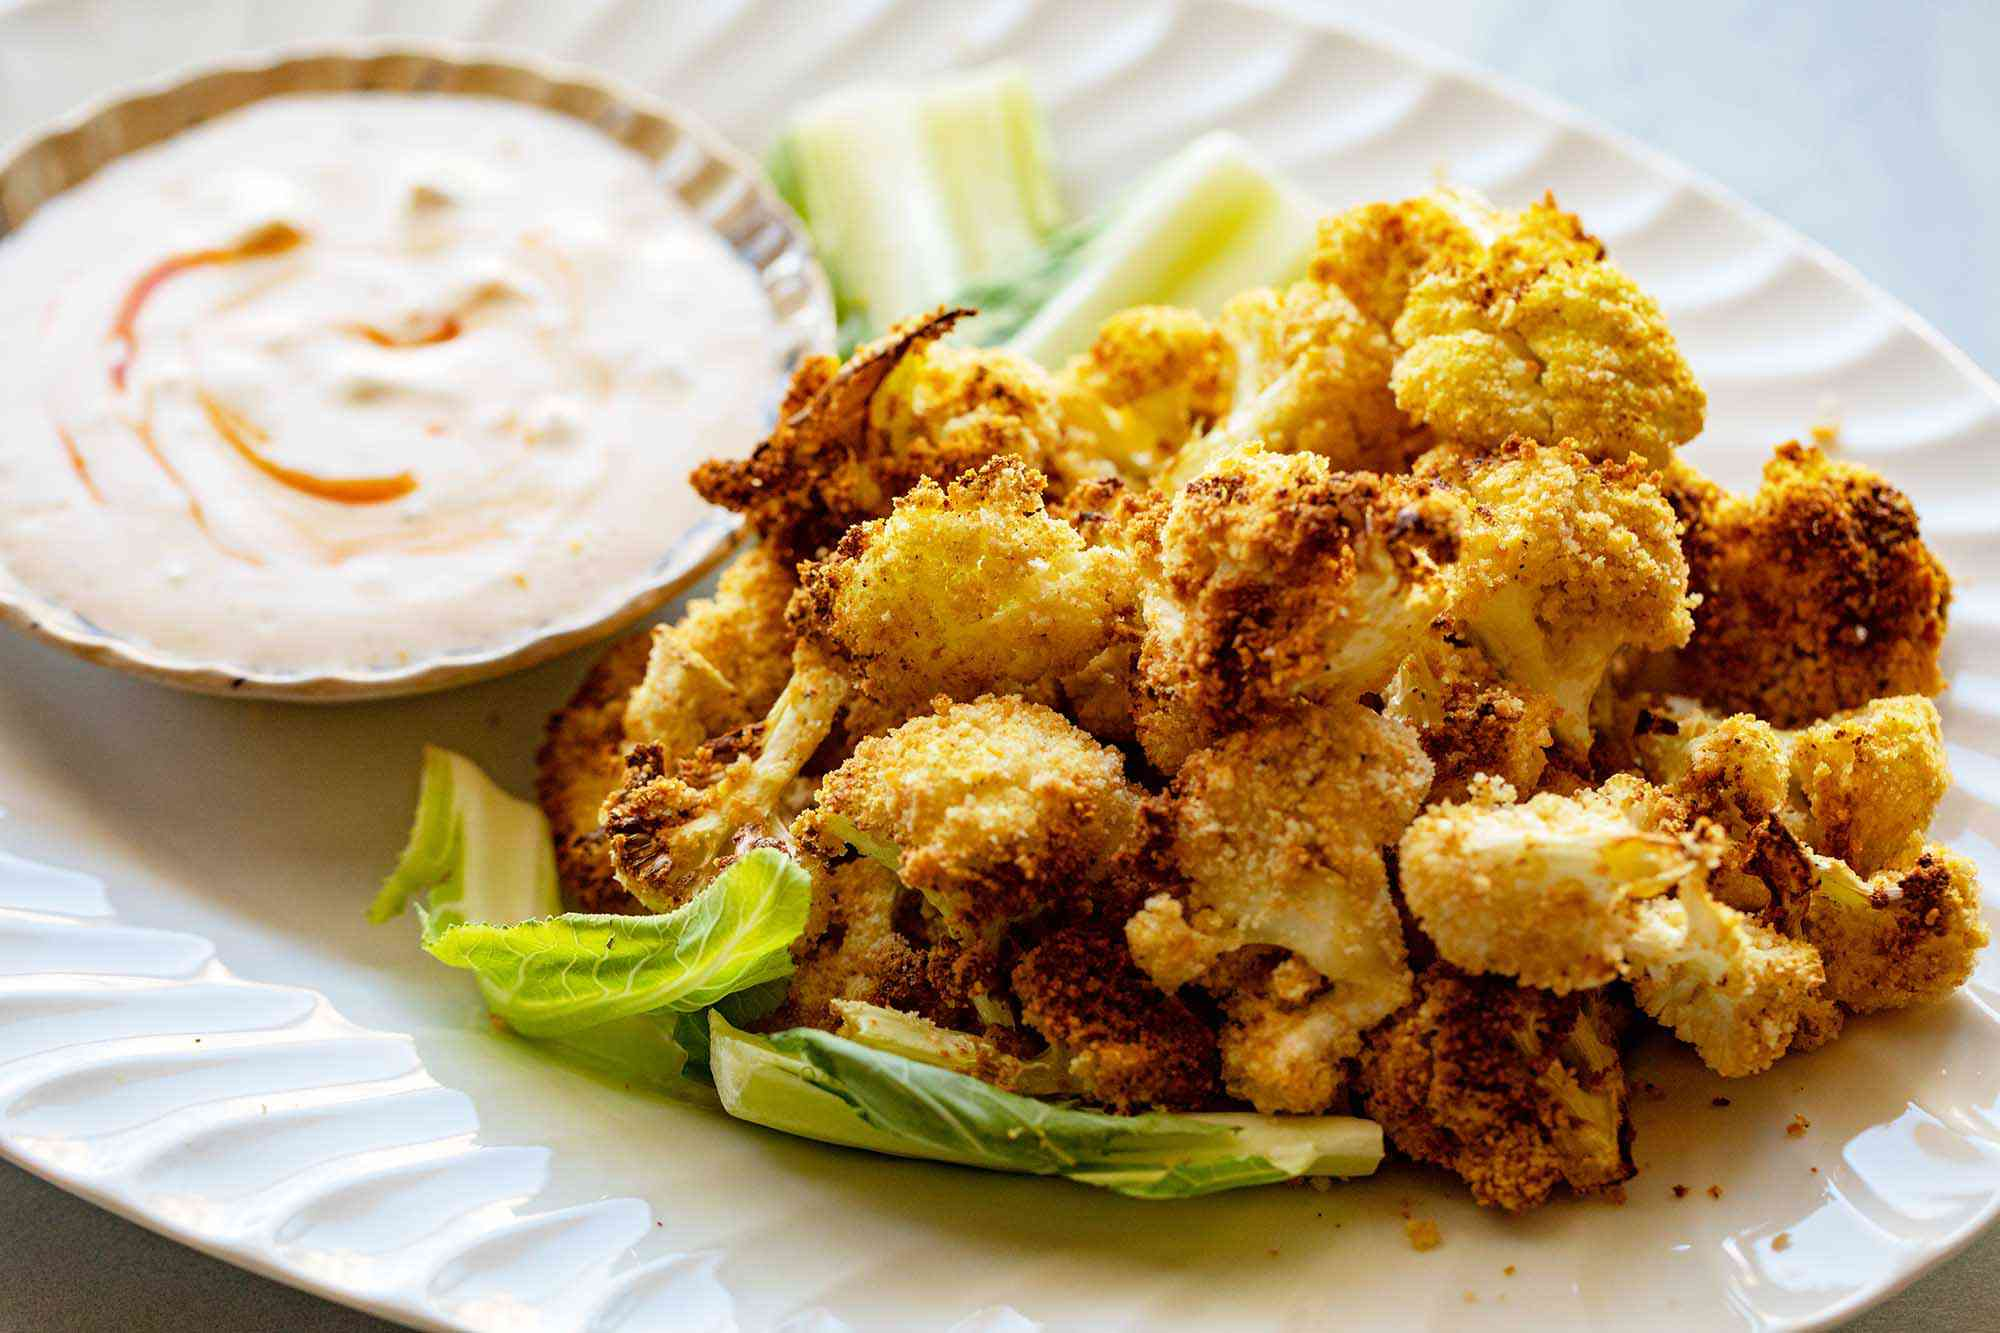 Platter of golden air fried crispy cauliflower heaped on the right of the platter. A small bowl of creamy dip swirled with hot sauce is placed next to the cauliflower on the platter. The cauliflower is resting on a few leaves of lettuce.